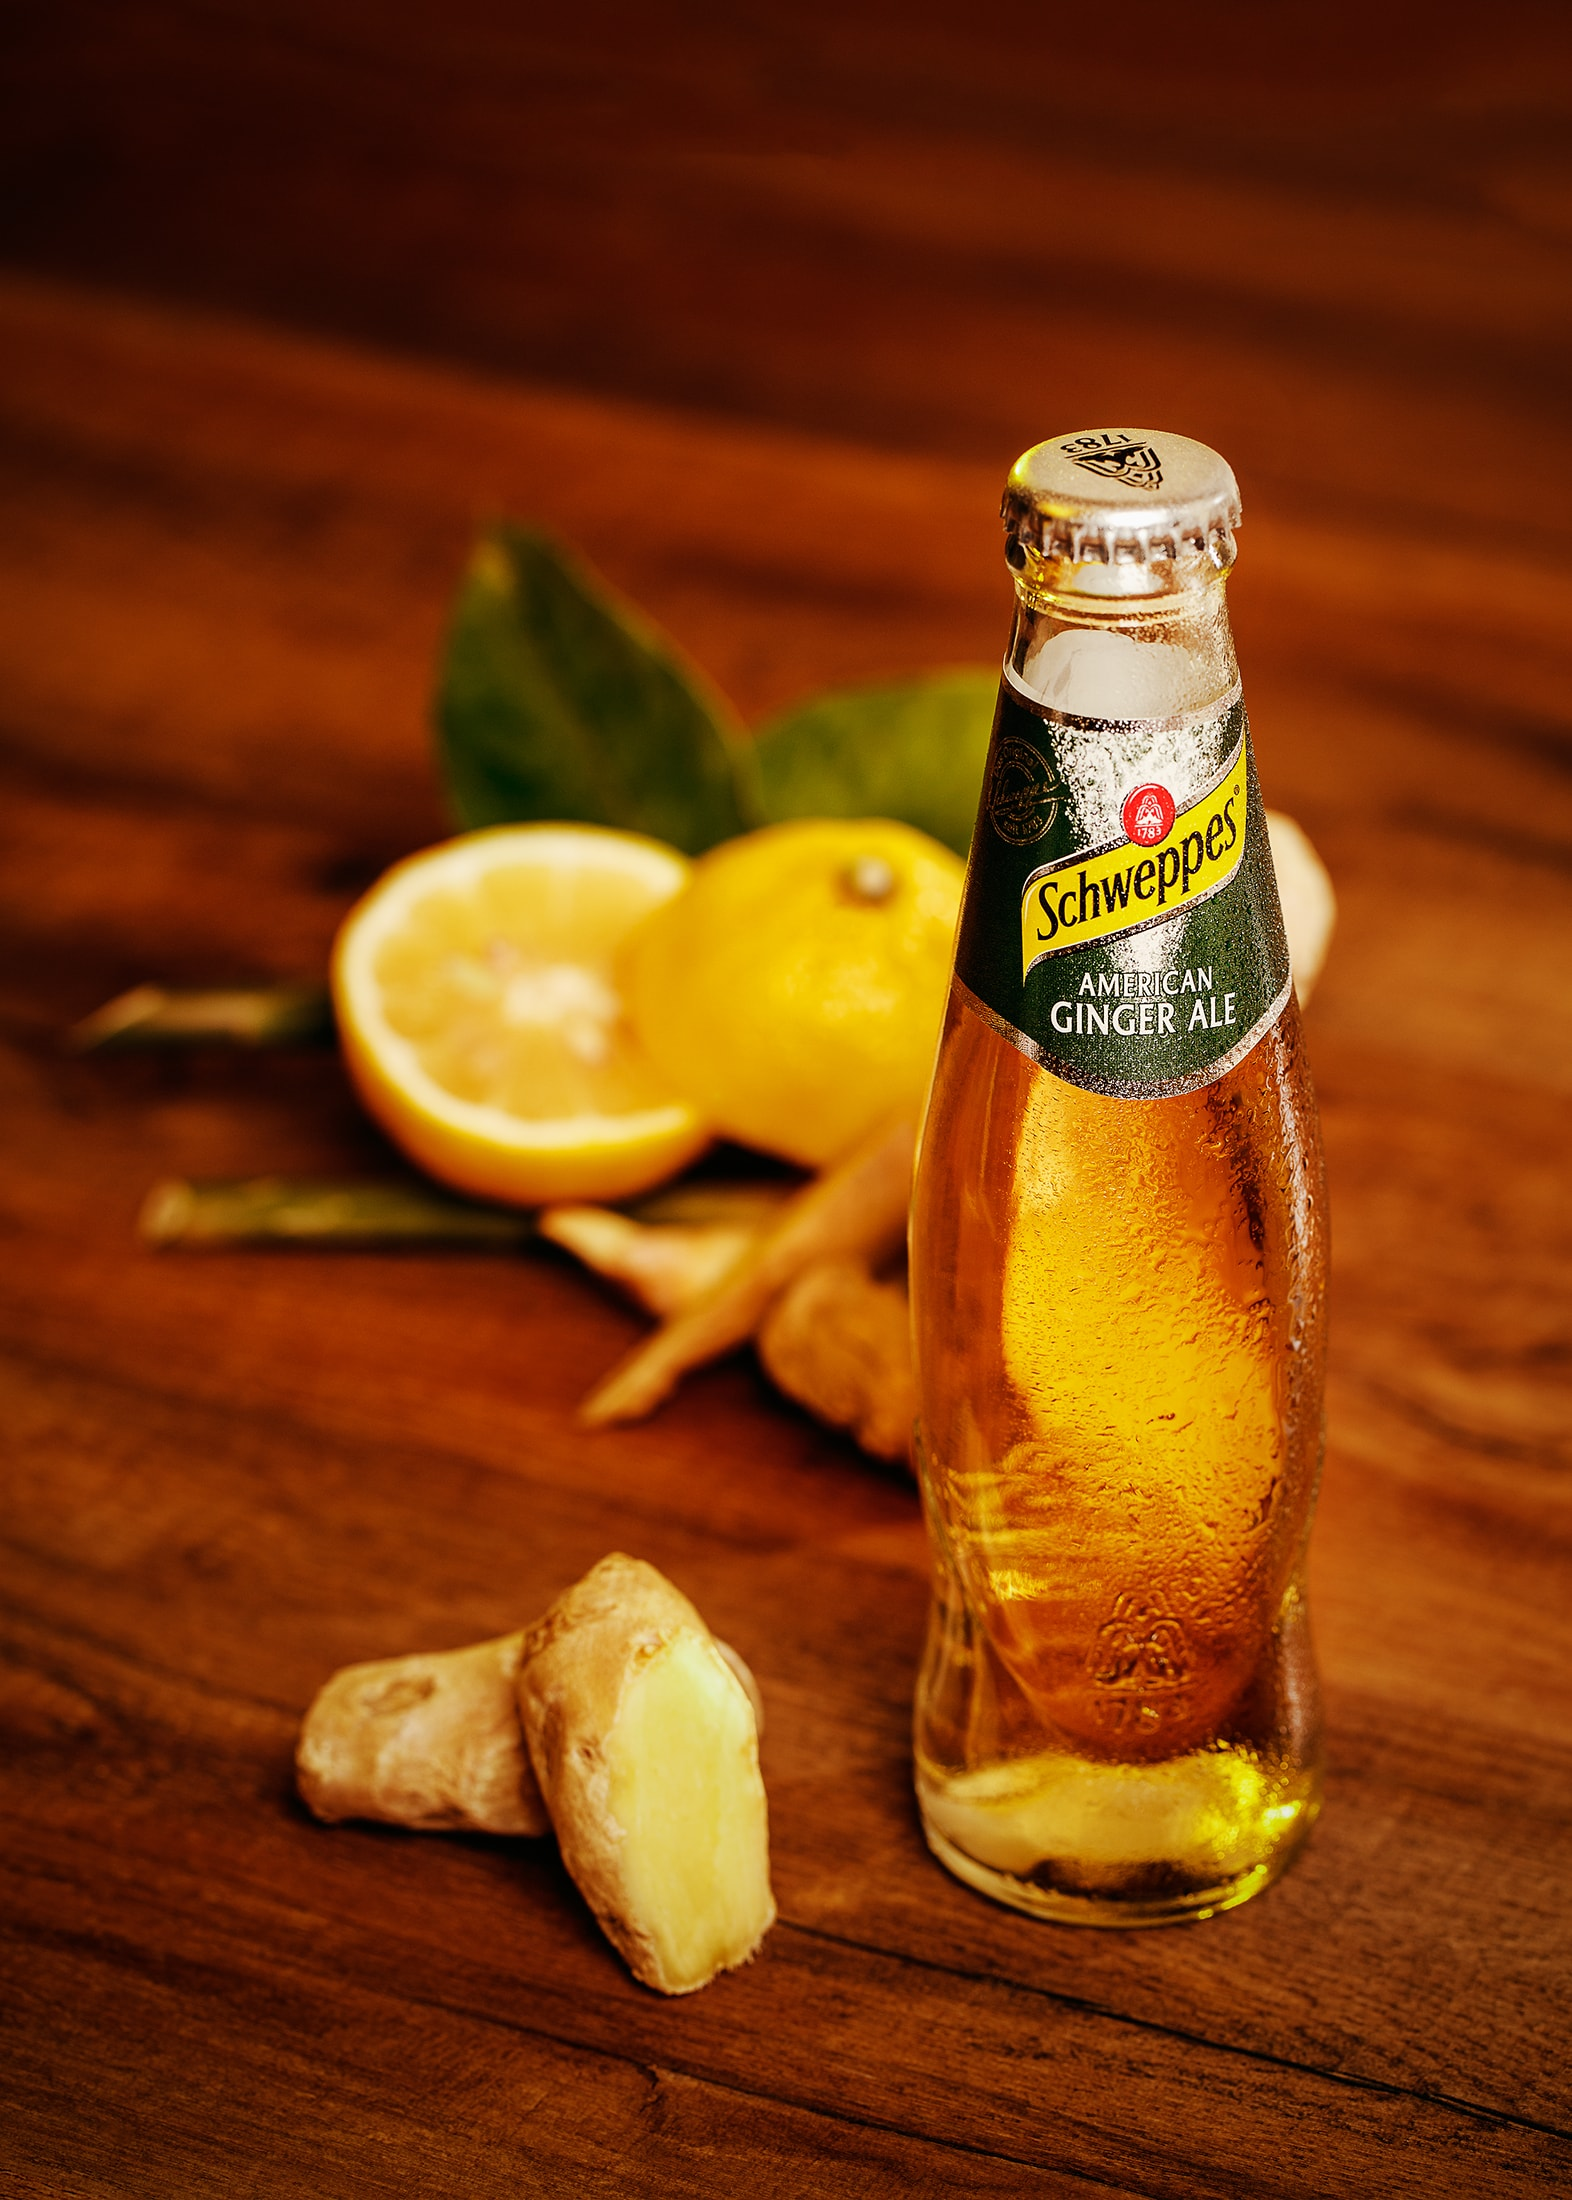 MIKA MIKA PHOTOGRAPHY FOOD & BEVERAGE – Schweppes